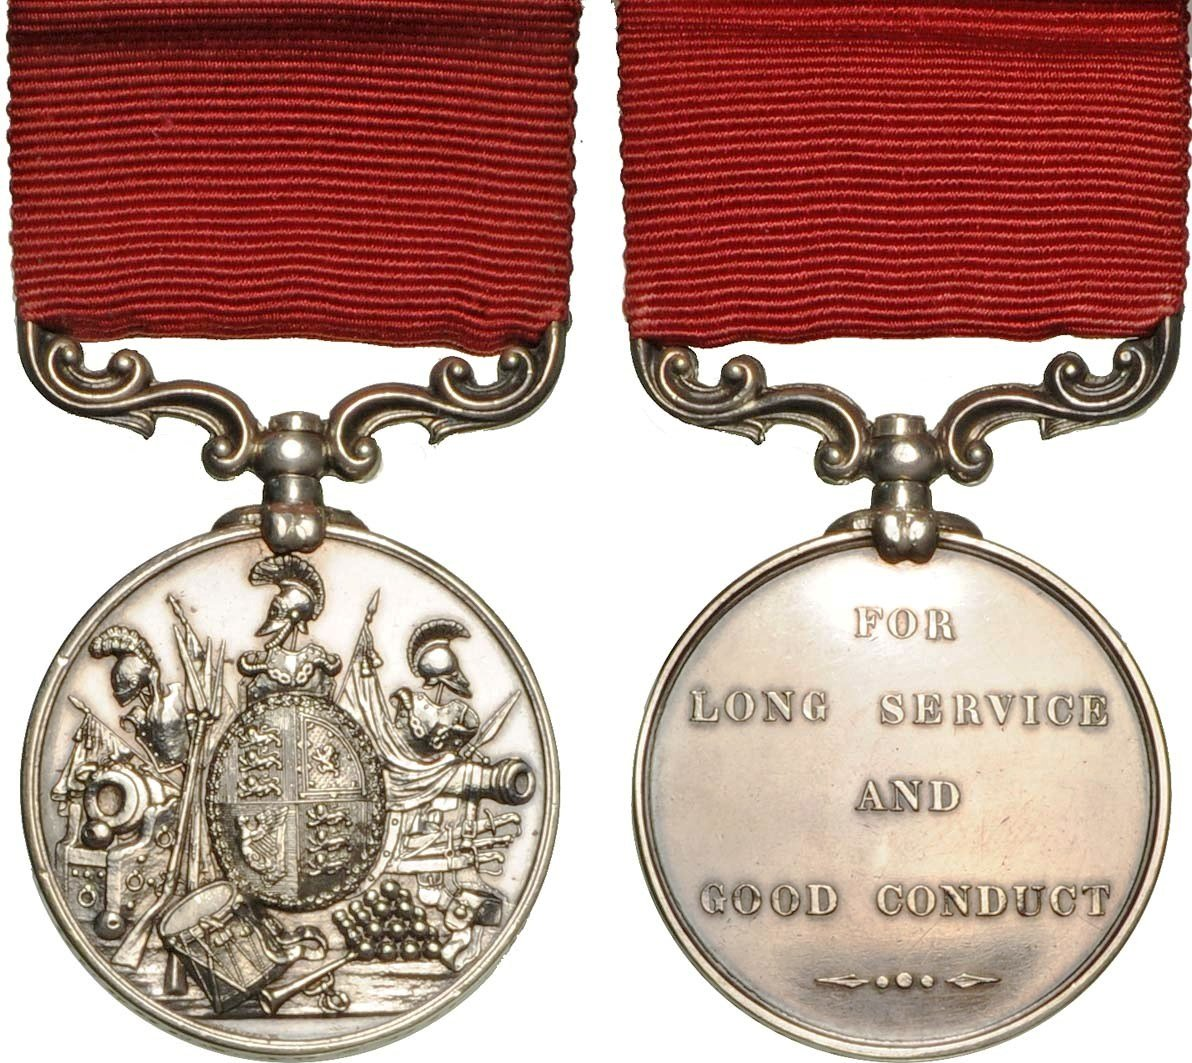 Army Long Service & Good Conduct Medal (1855-1874 type)